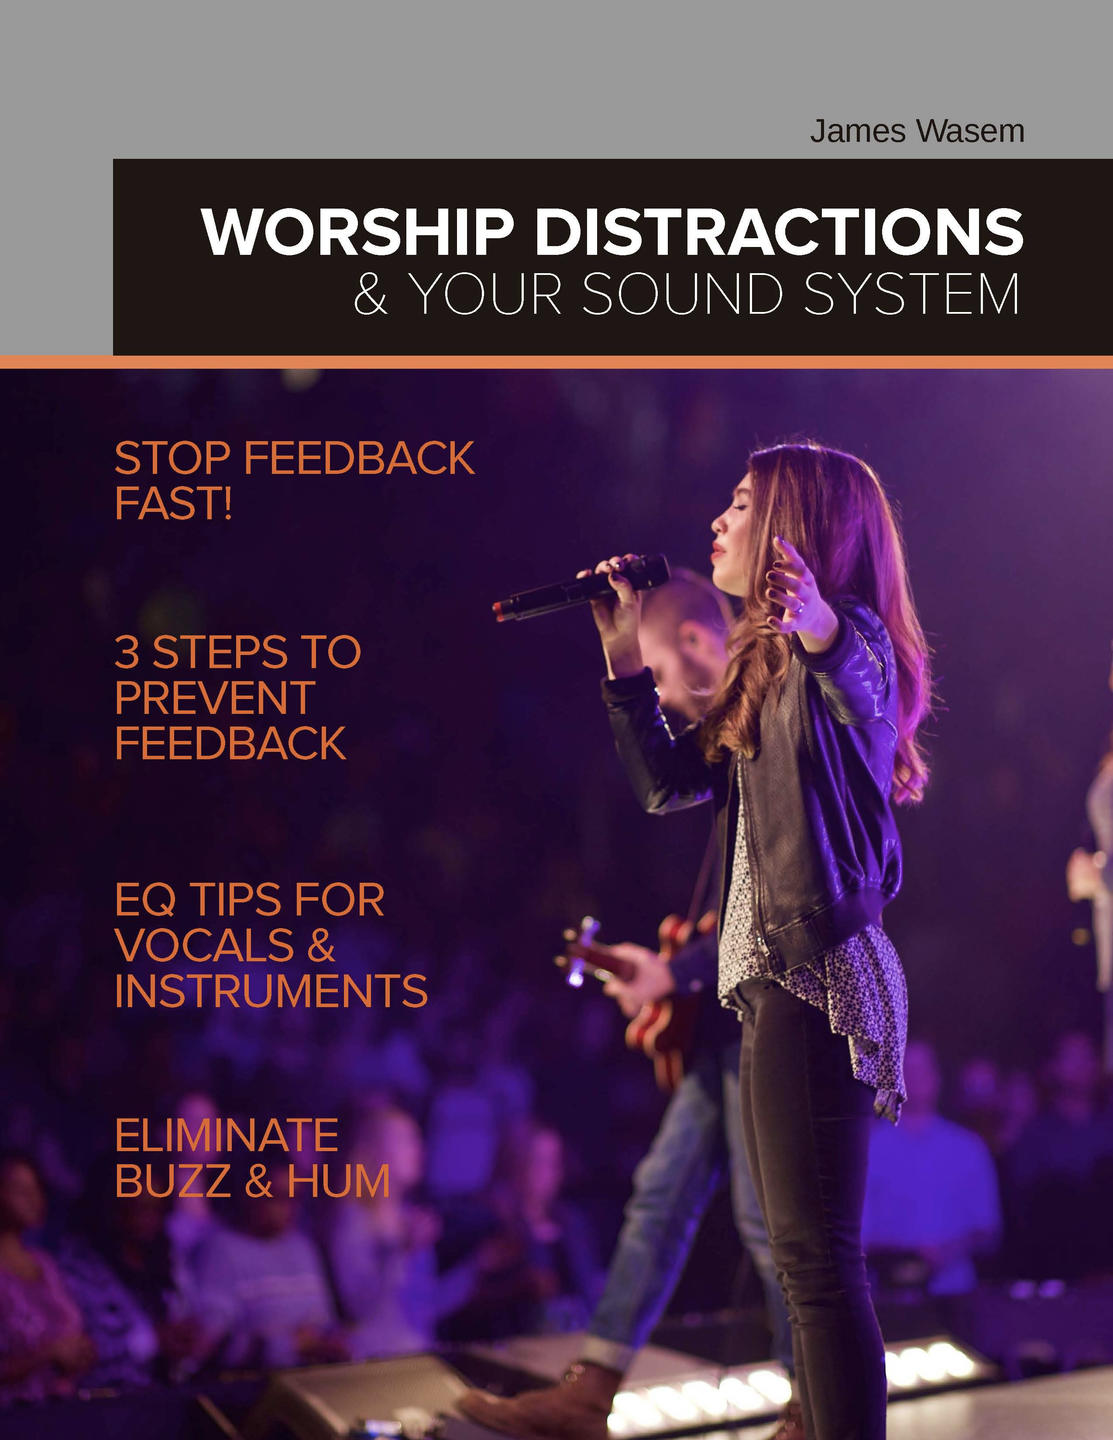 Worship Distractions and Your Sound System